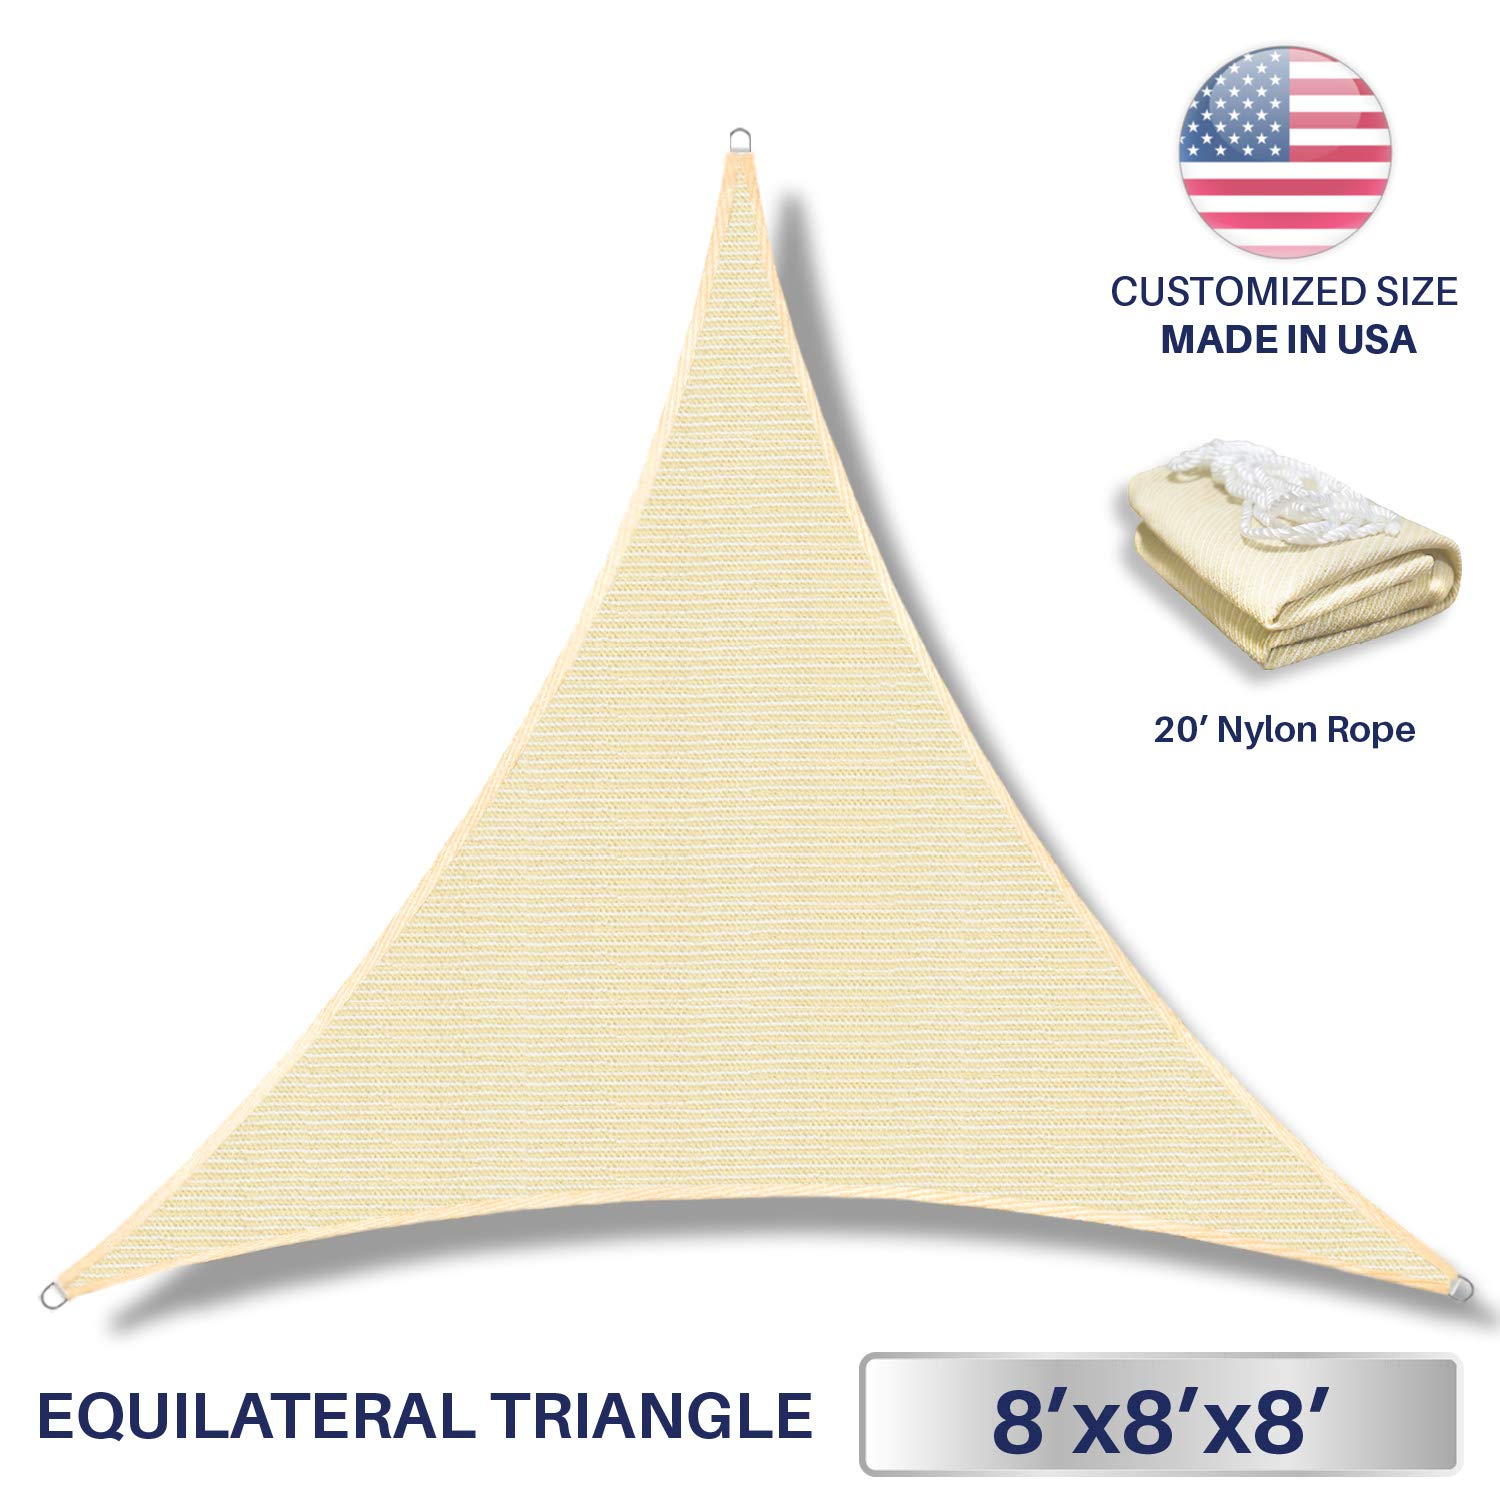 Windscreen4less 8' x 8' x 8' Triangle Sun Shade Sail - Beige Durable UV Shelter Canopy for Patio Outdoor Backyard - Custom